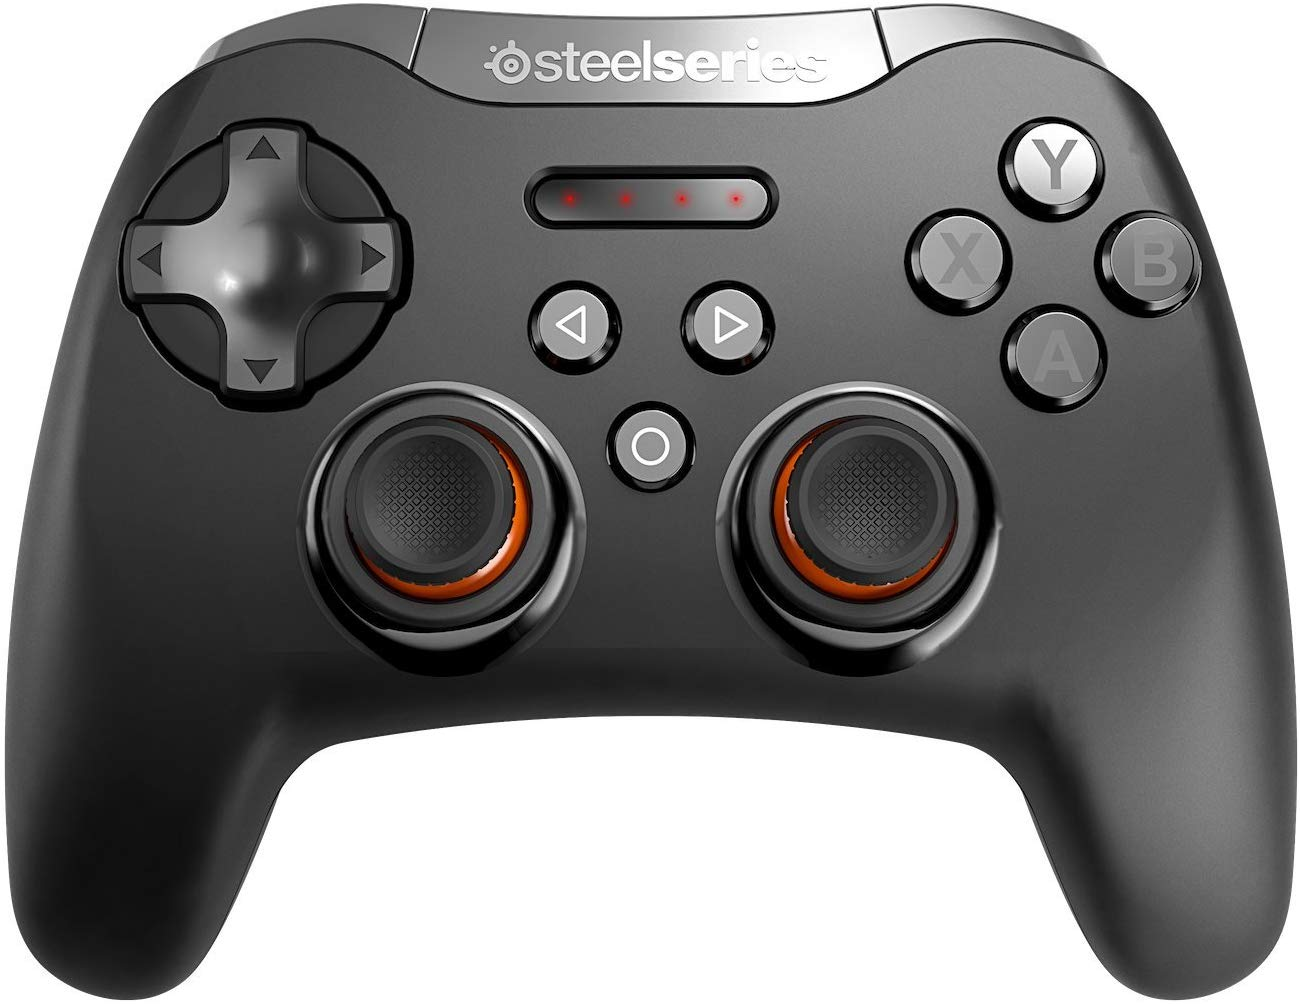 SteelSeries Stratus Bluetooth Gaming Controller